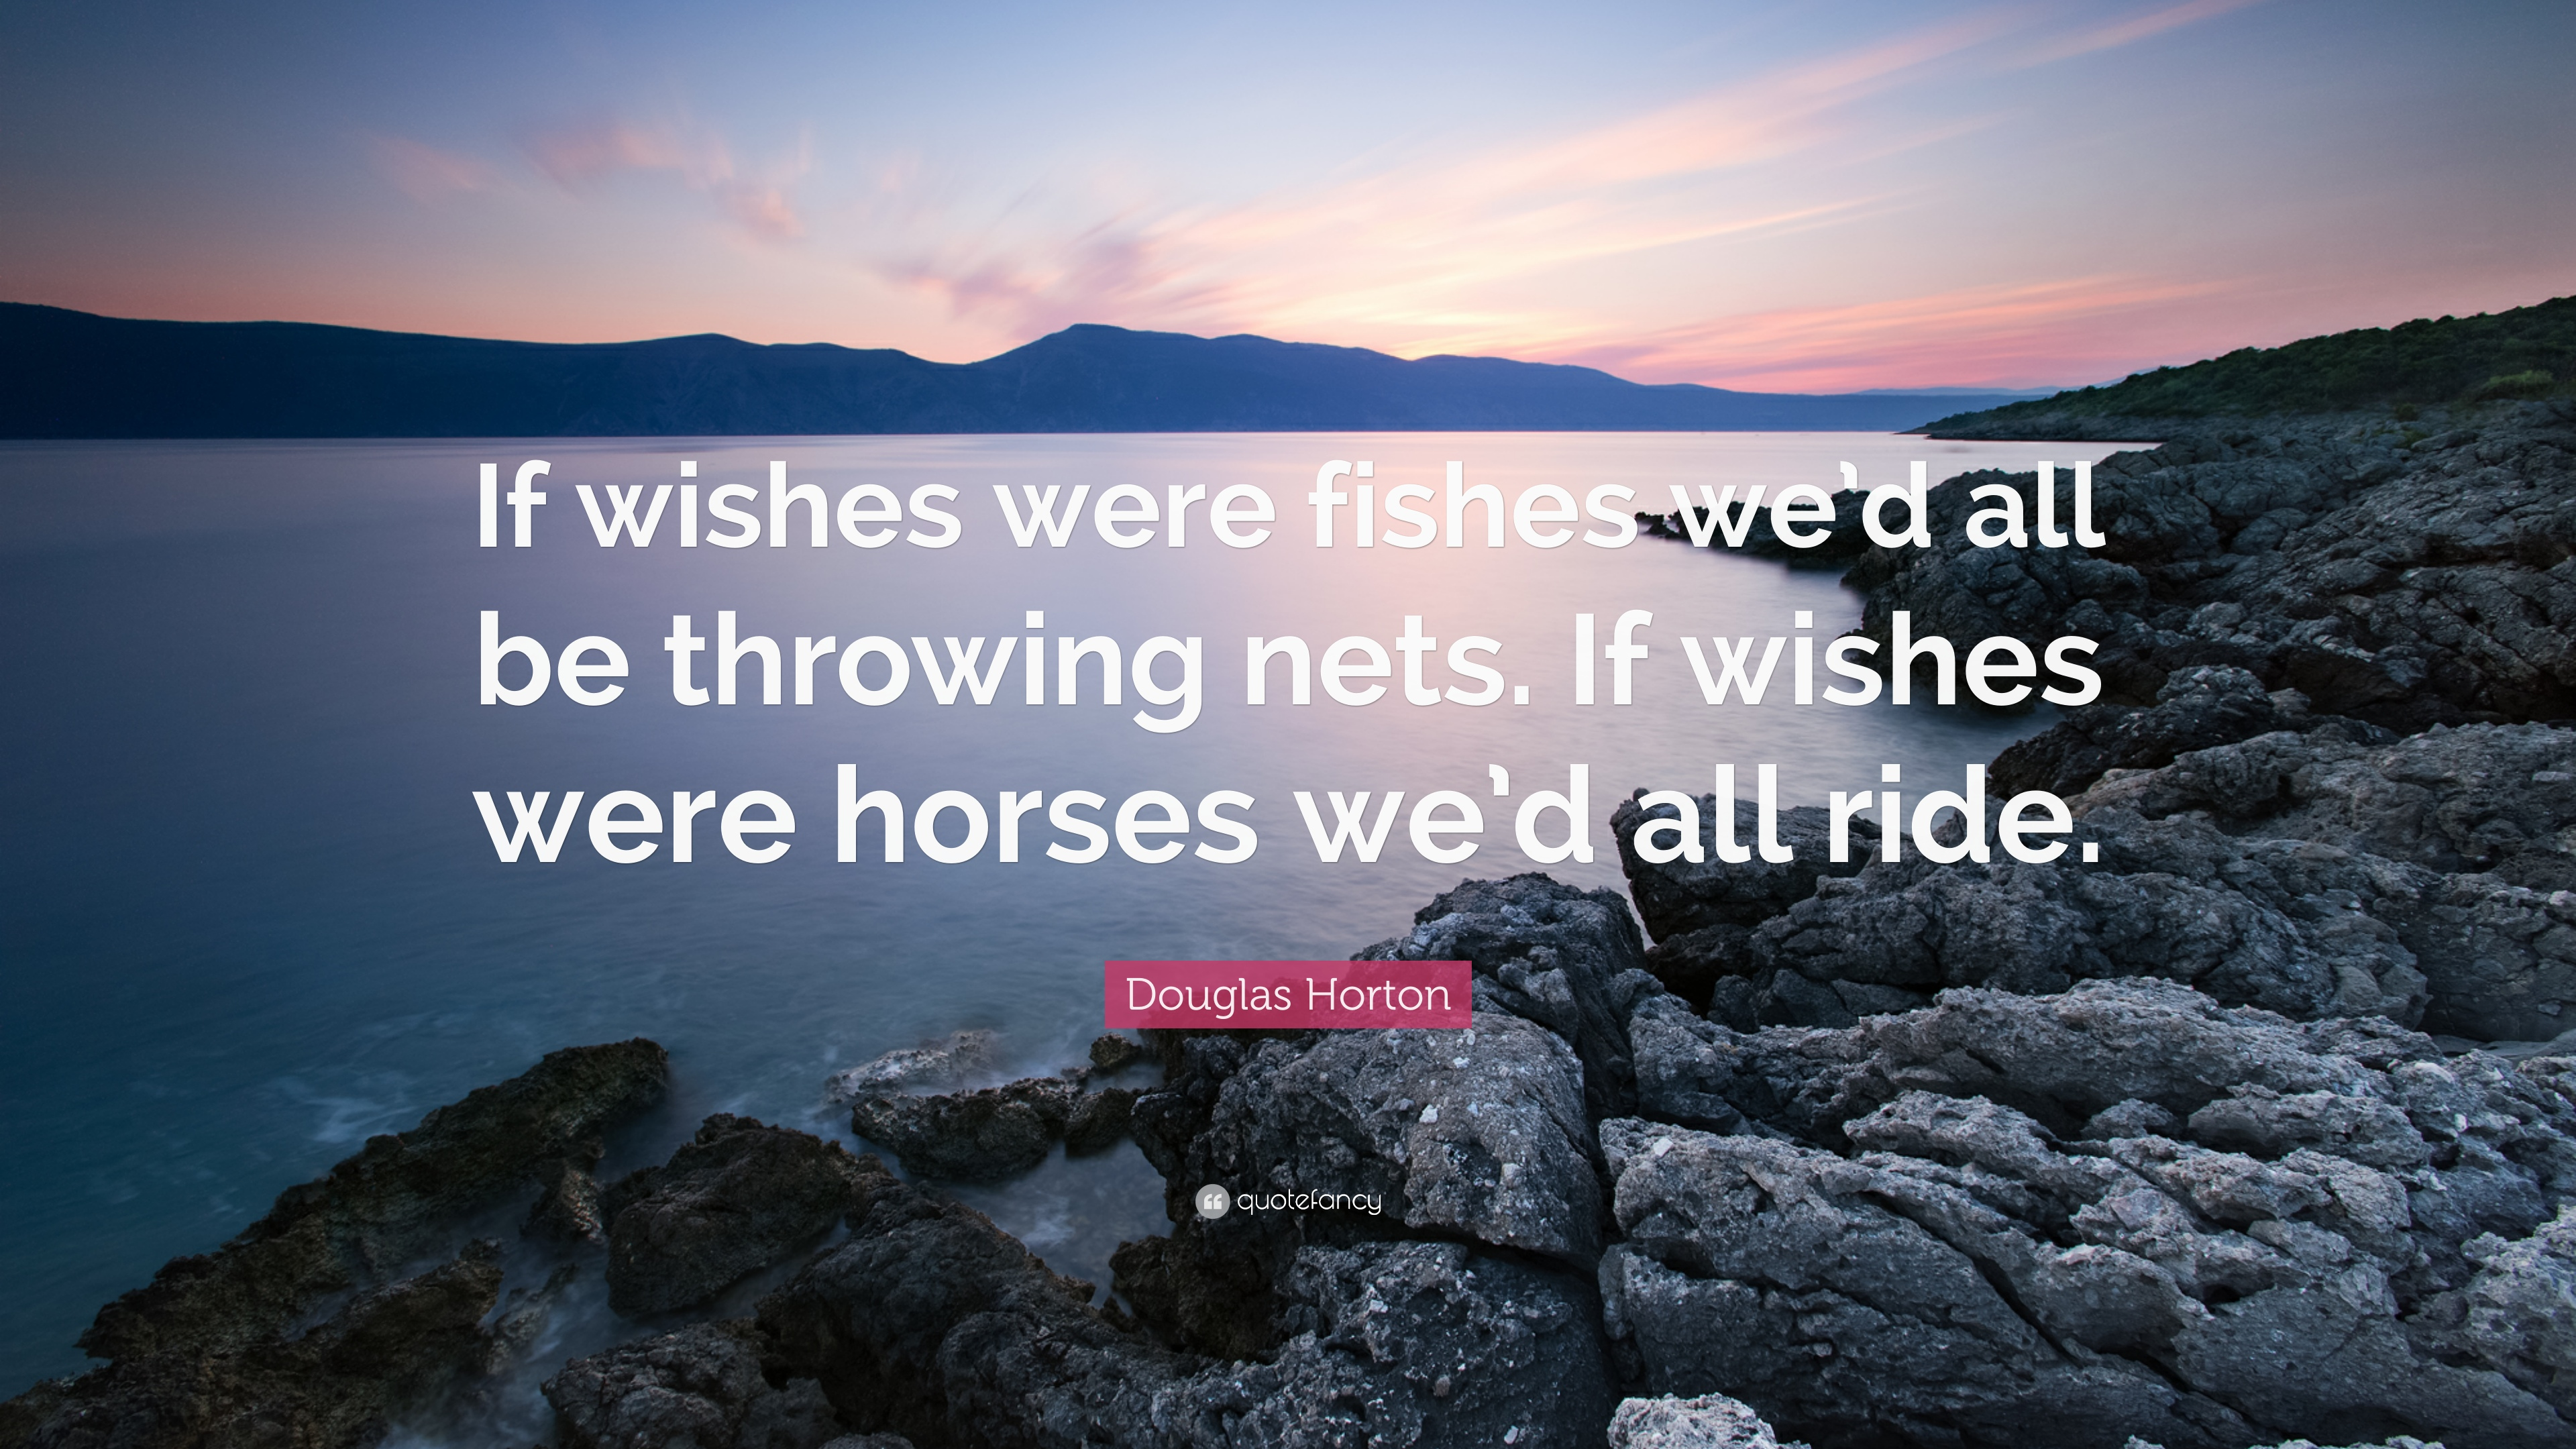 Douglas Horton Quote If Wishes Were Fishes We D All Be Throwing Nets If Wishes Were Horses We D All Ride 7 Wallpapers Quotefancy